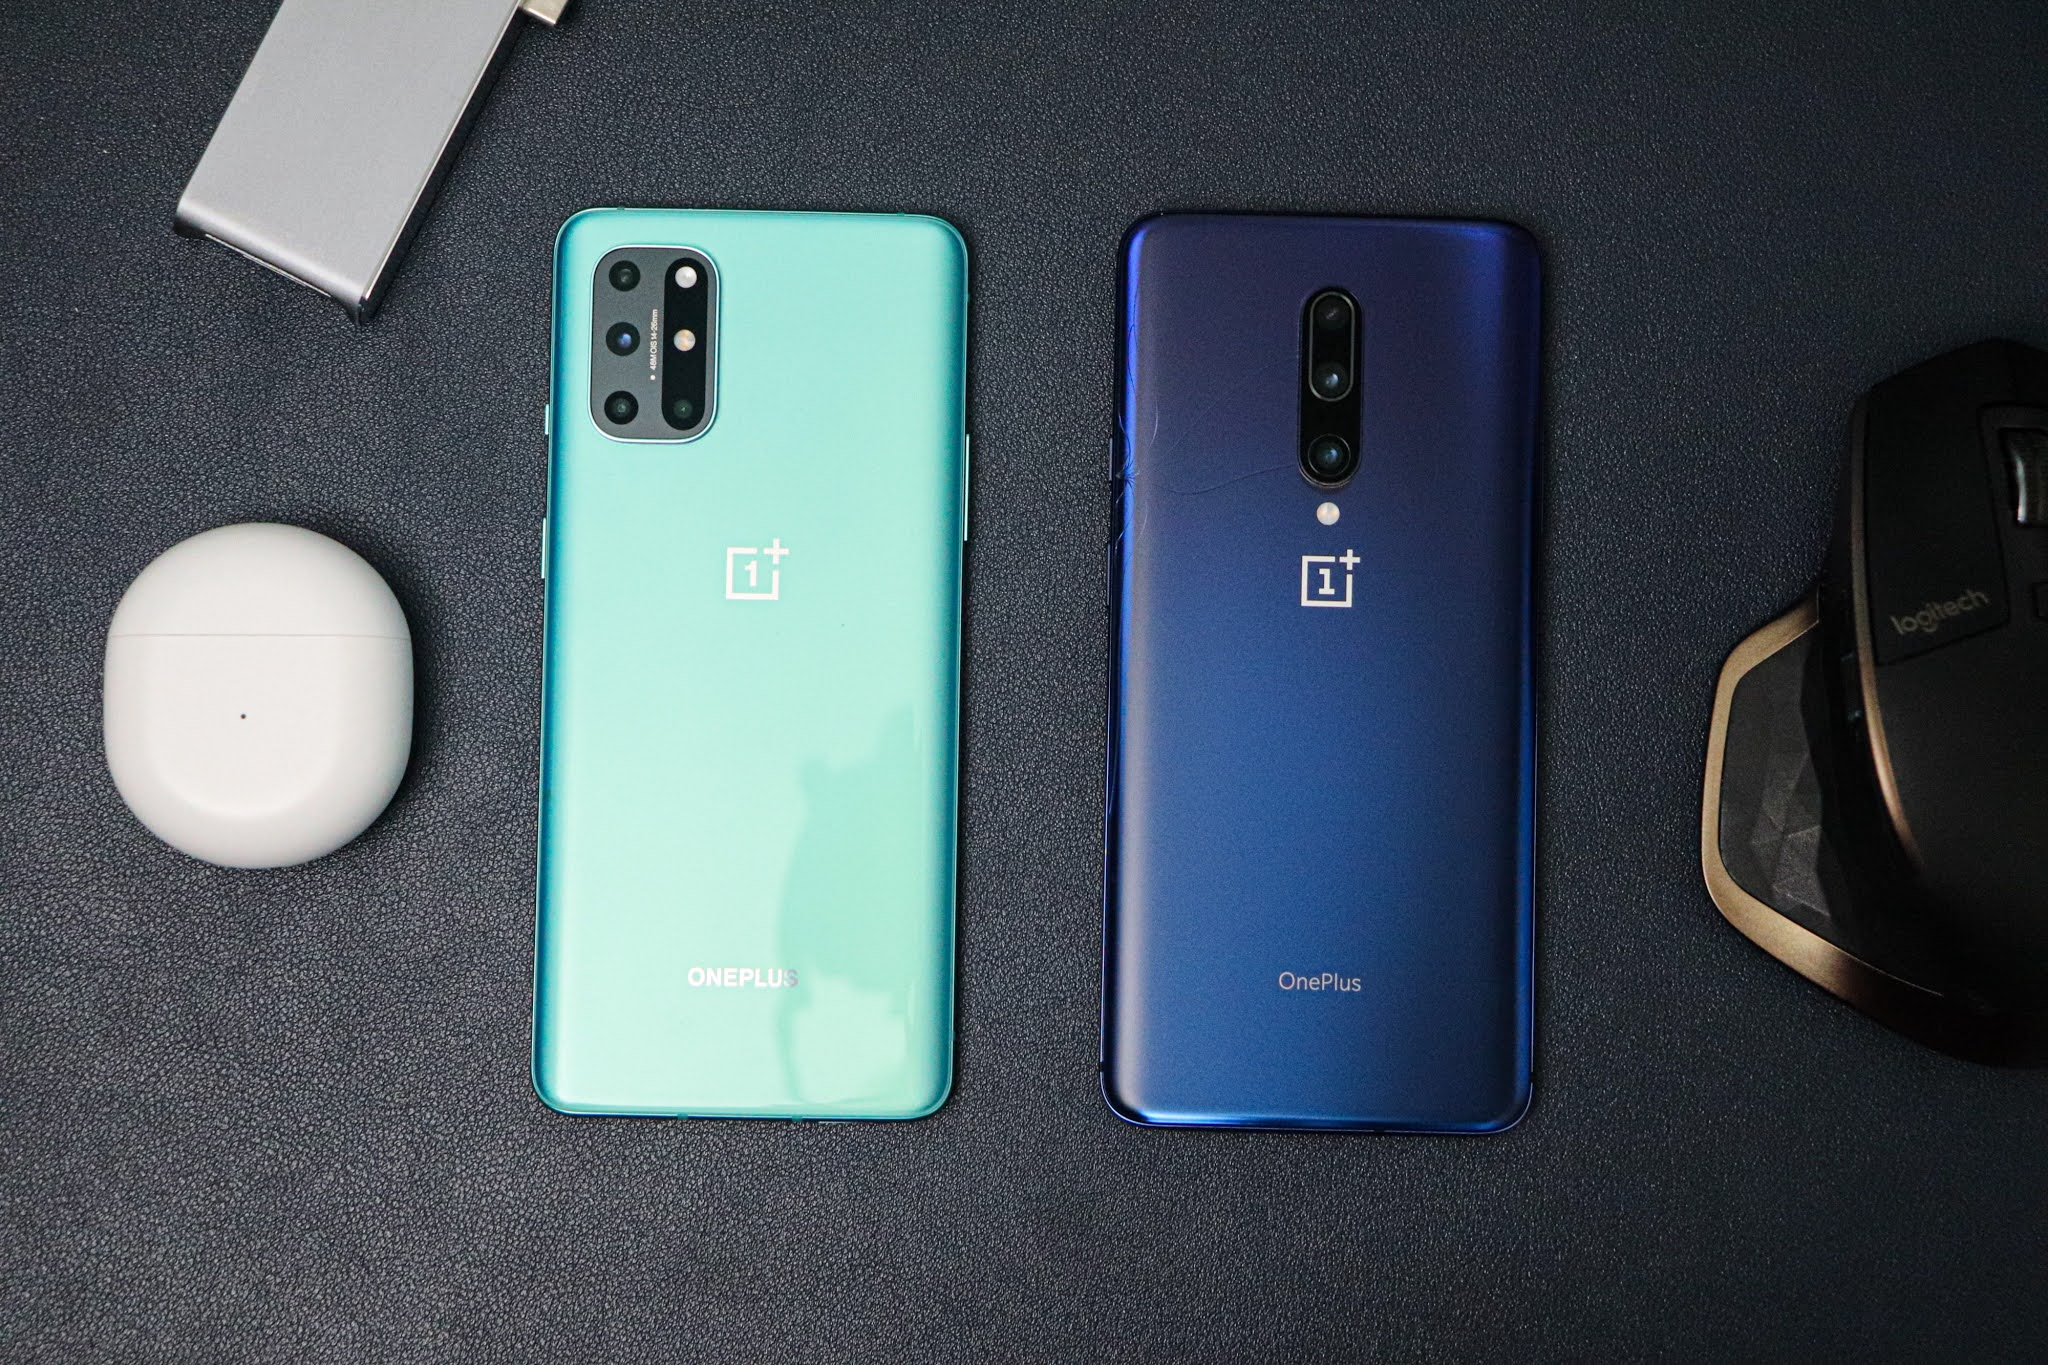 OnePlus 8 and 8T will get Boost 3.0 from the 9 series in upcoming updates